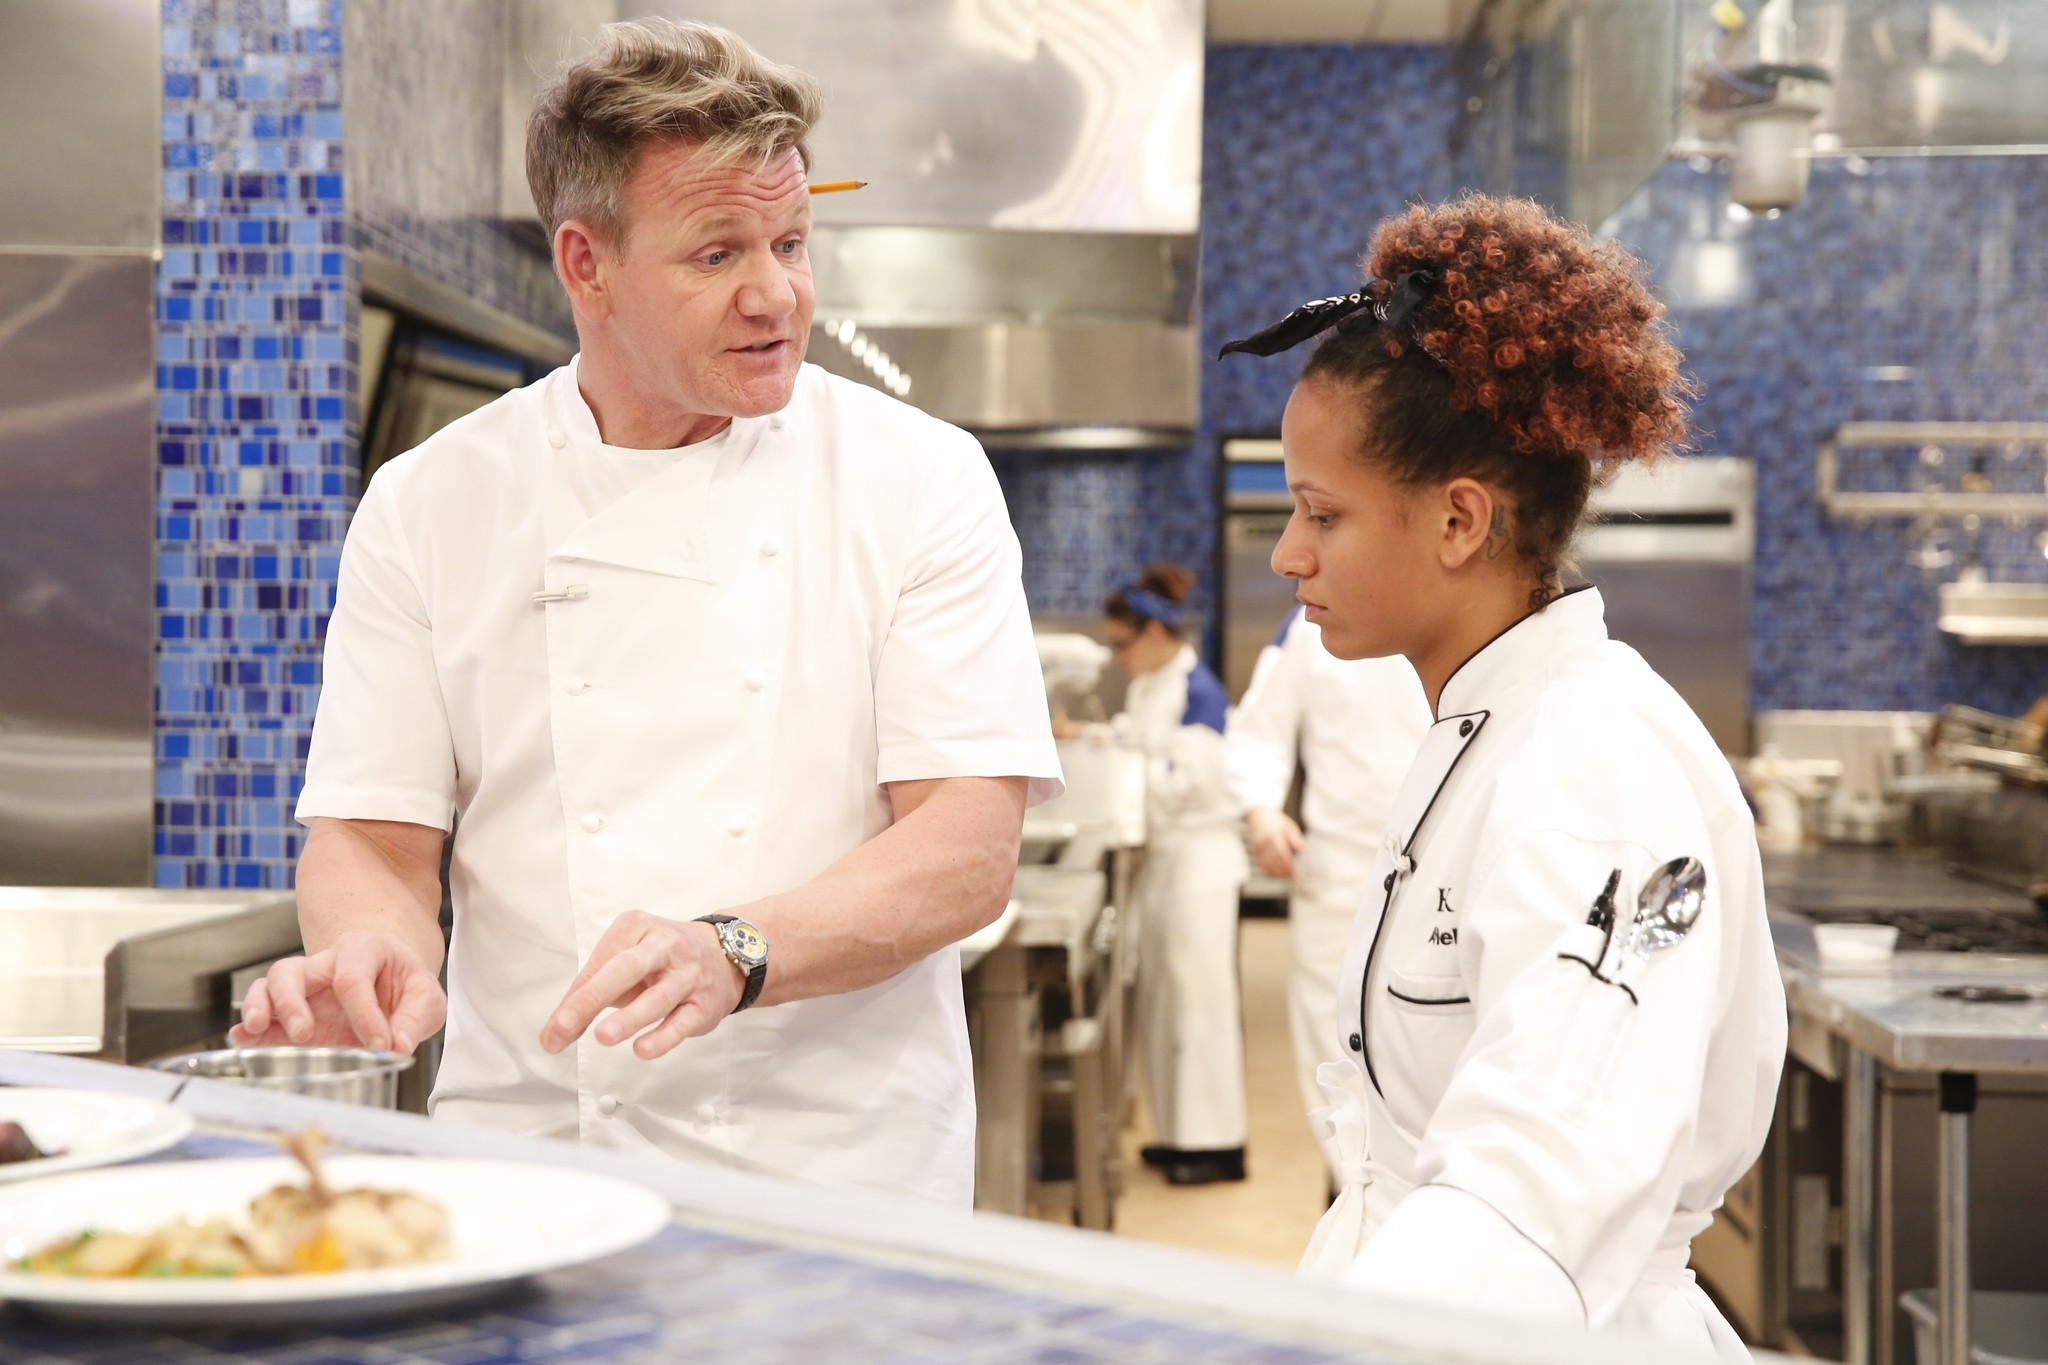 Woman With Local Ties Wins Hell S Kitchen The Morning Call